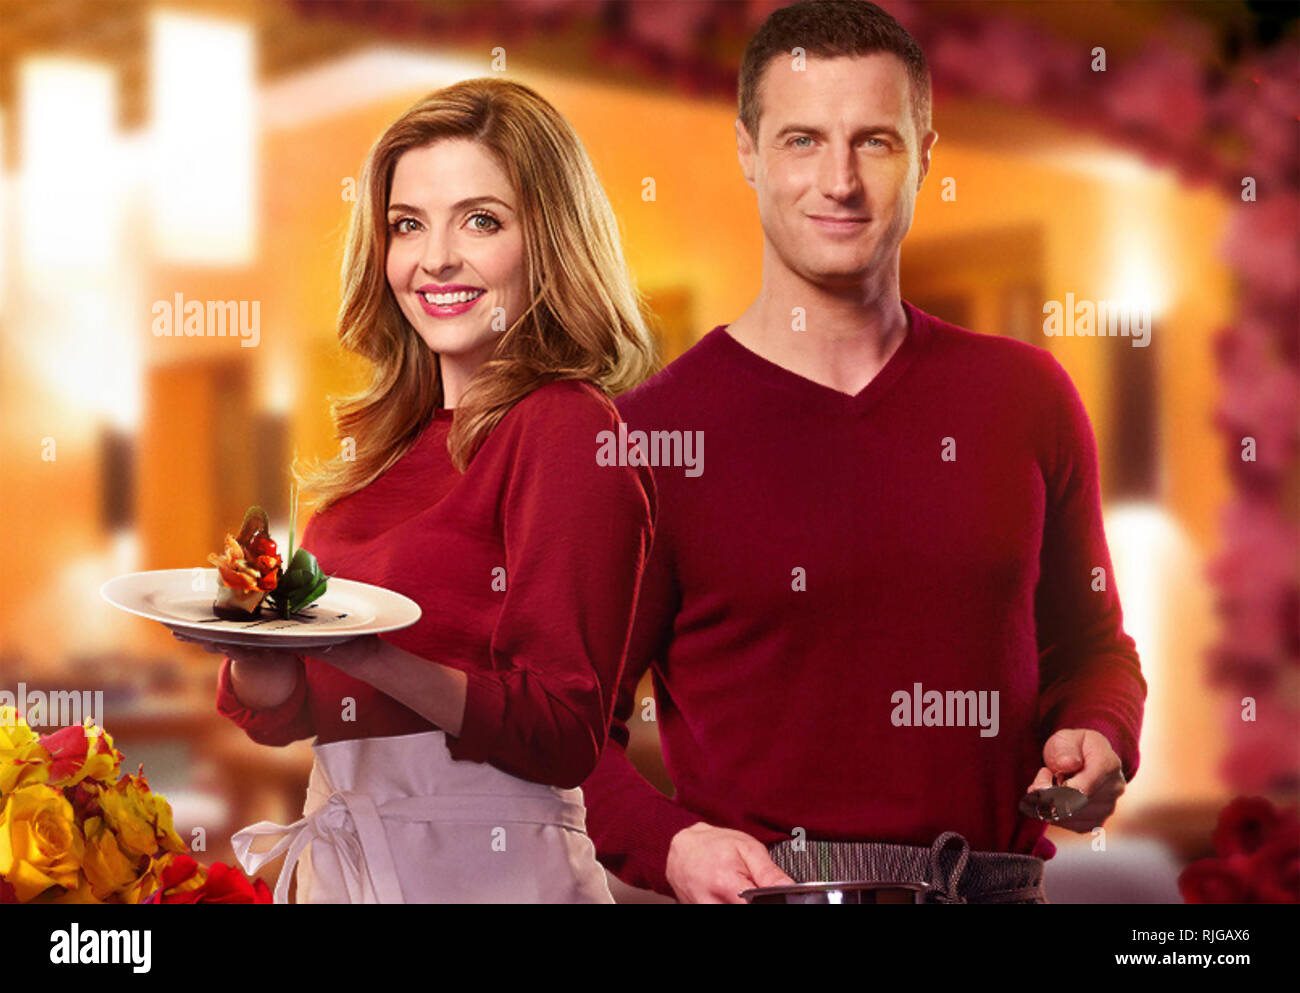 A DASH OF LOVE 2017 Hallmark Channel film with Jen Tilley and Brendan Penny - Stock Image